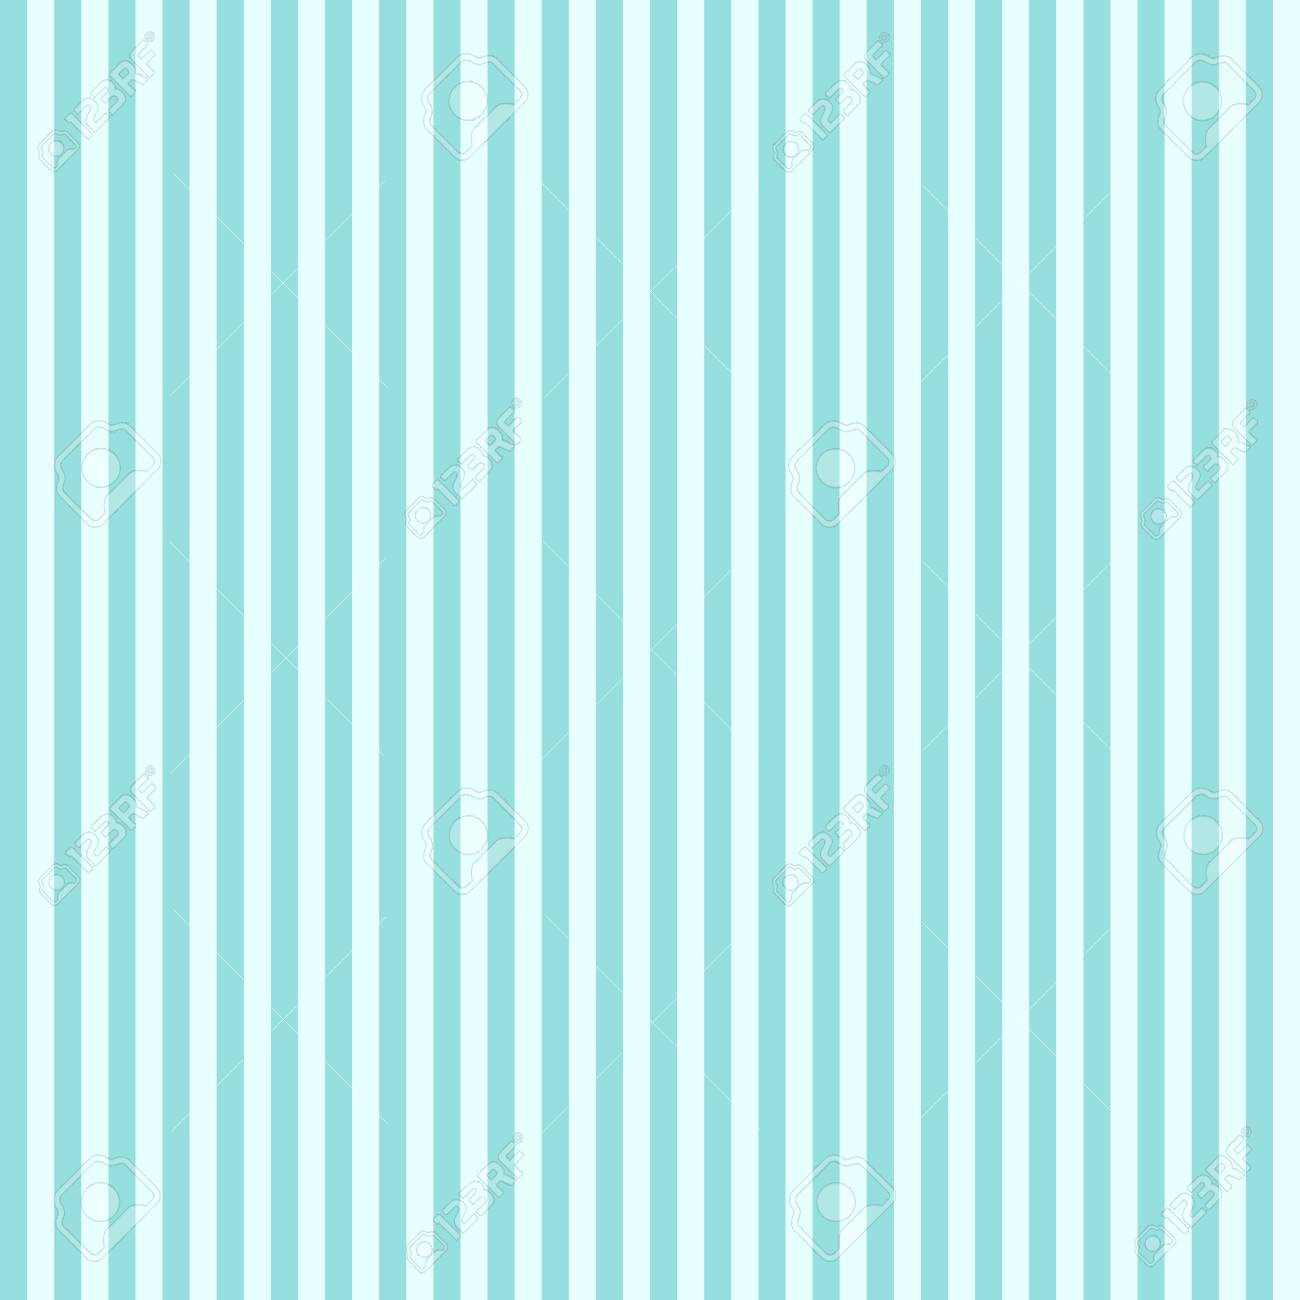 Background Pattern Stripe Seamless Vector Texture Green Aqua